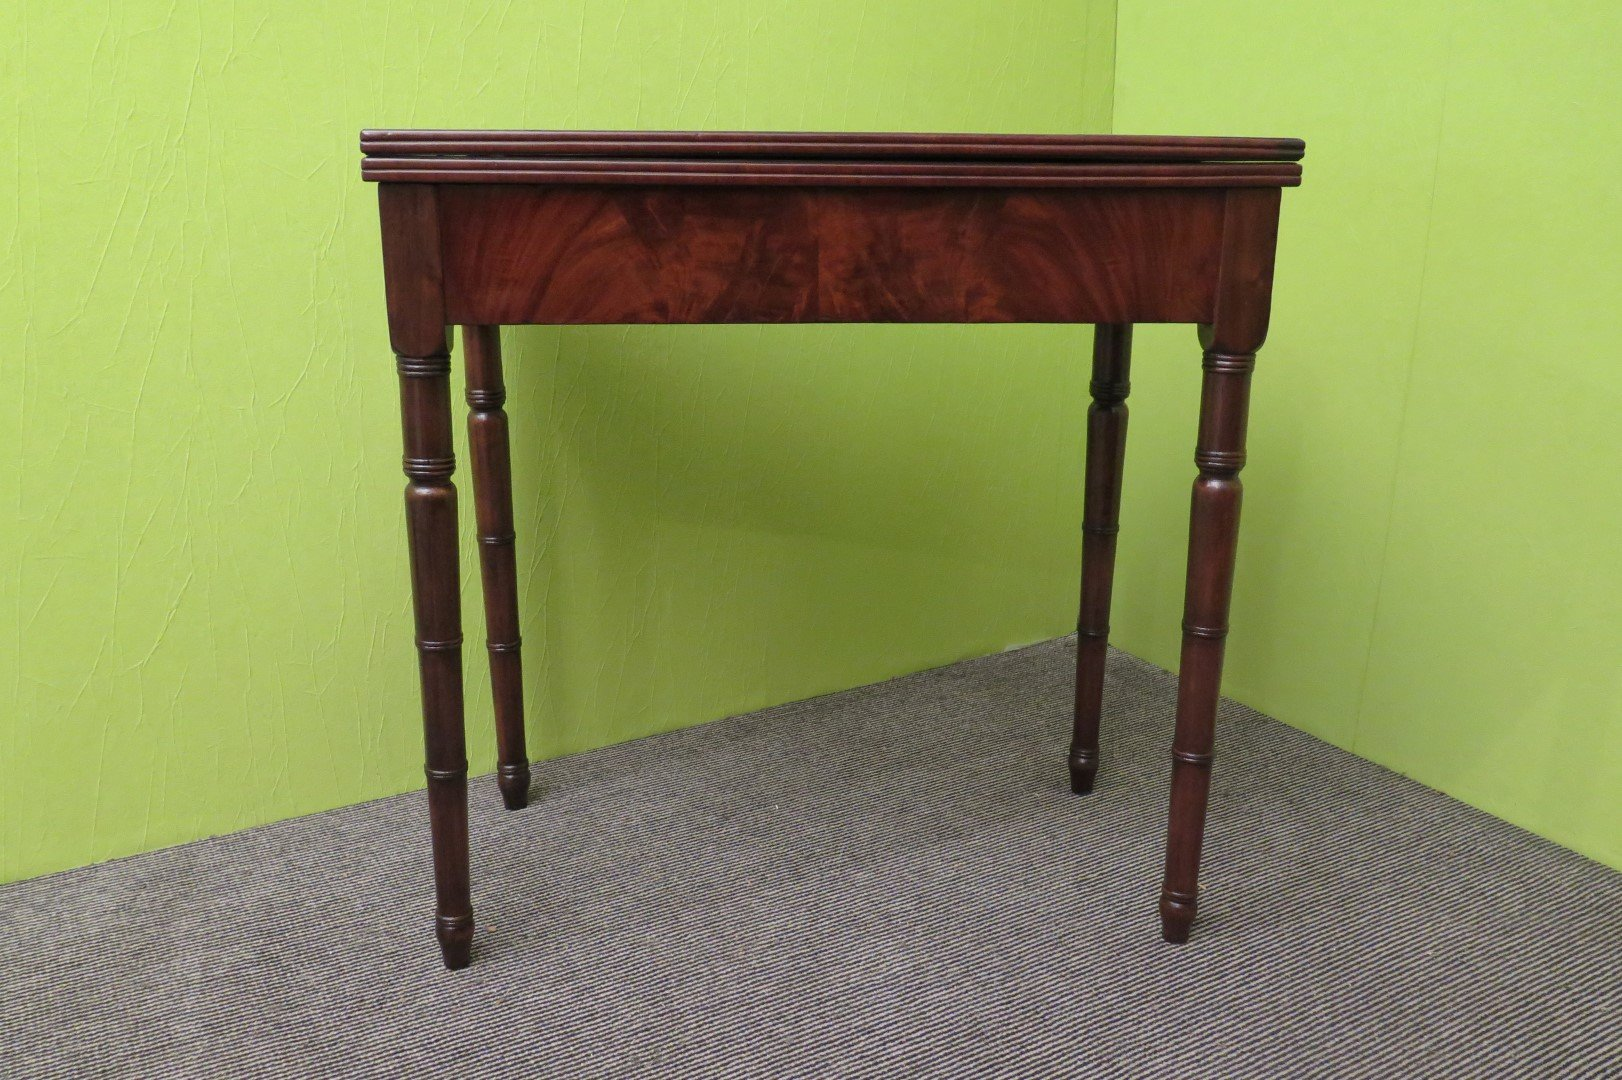 Antique italian card playing table 1850s for sale at pamono for Table 52 cards